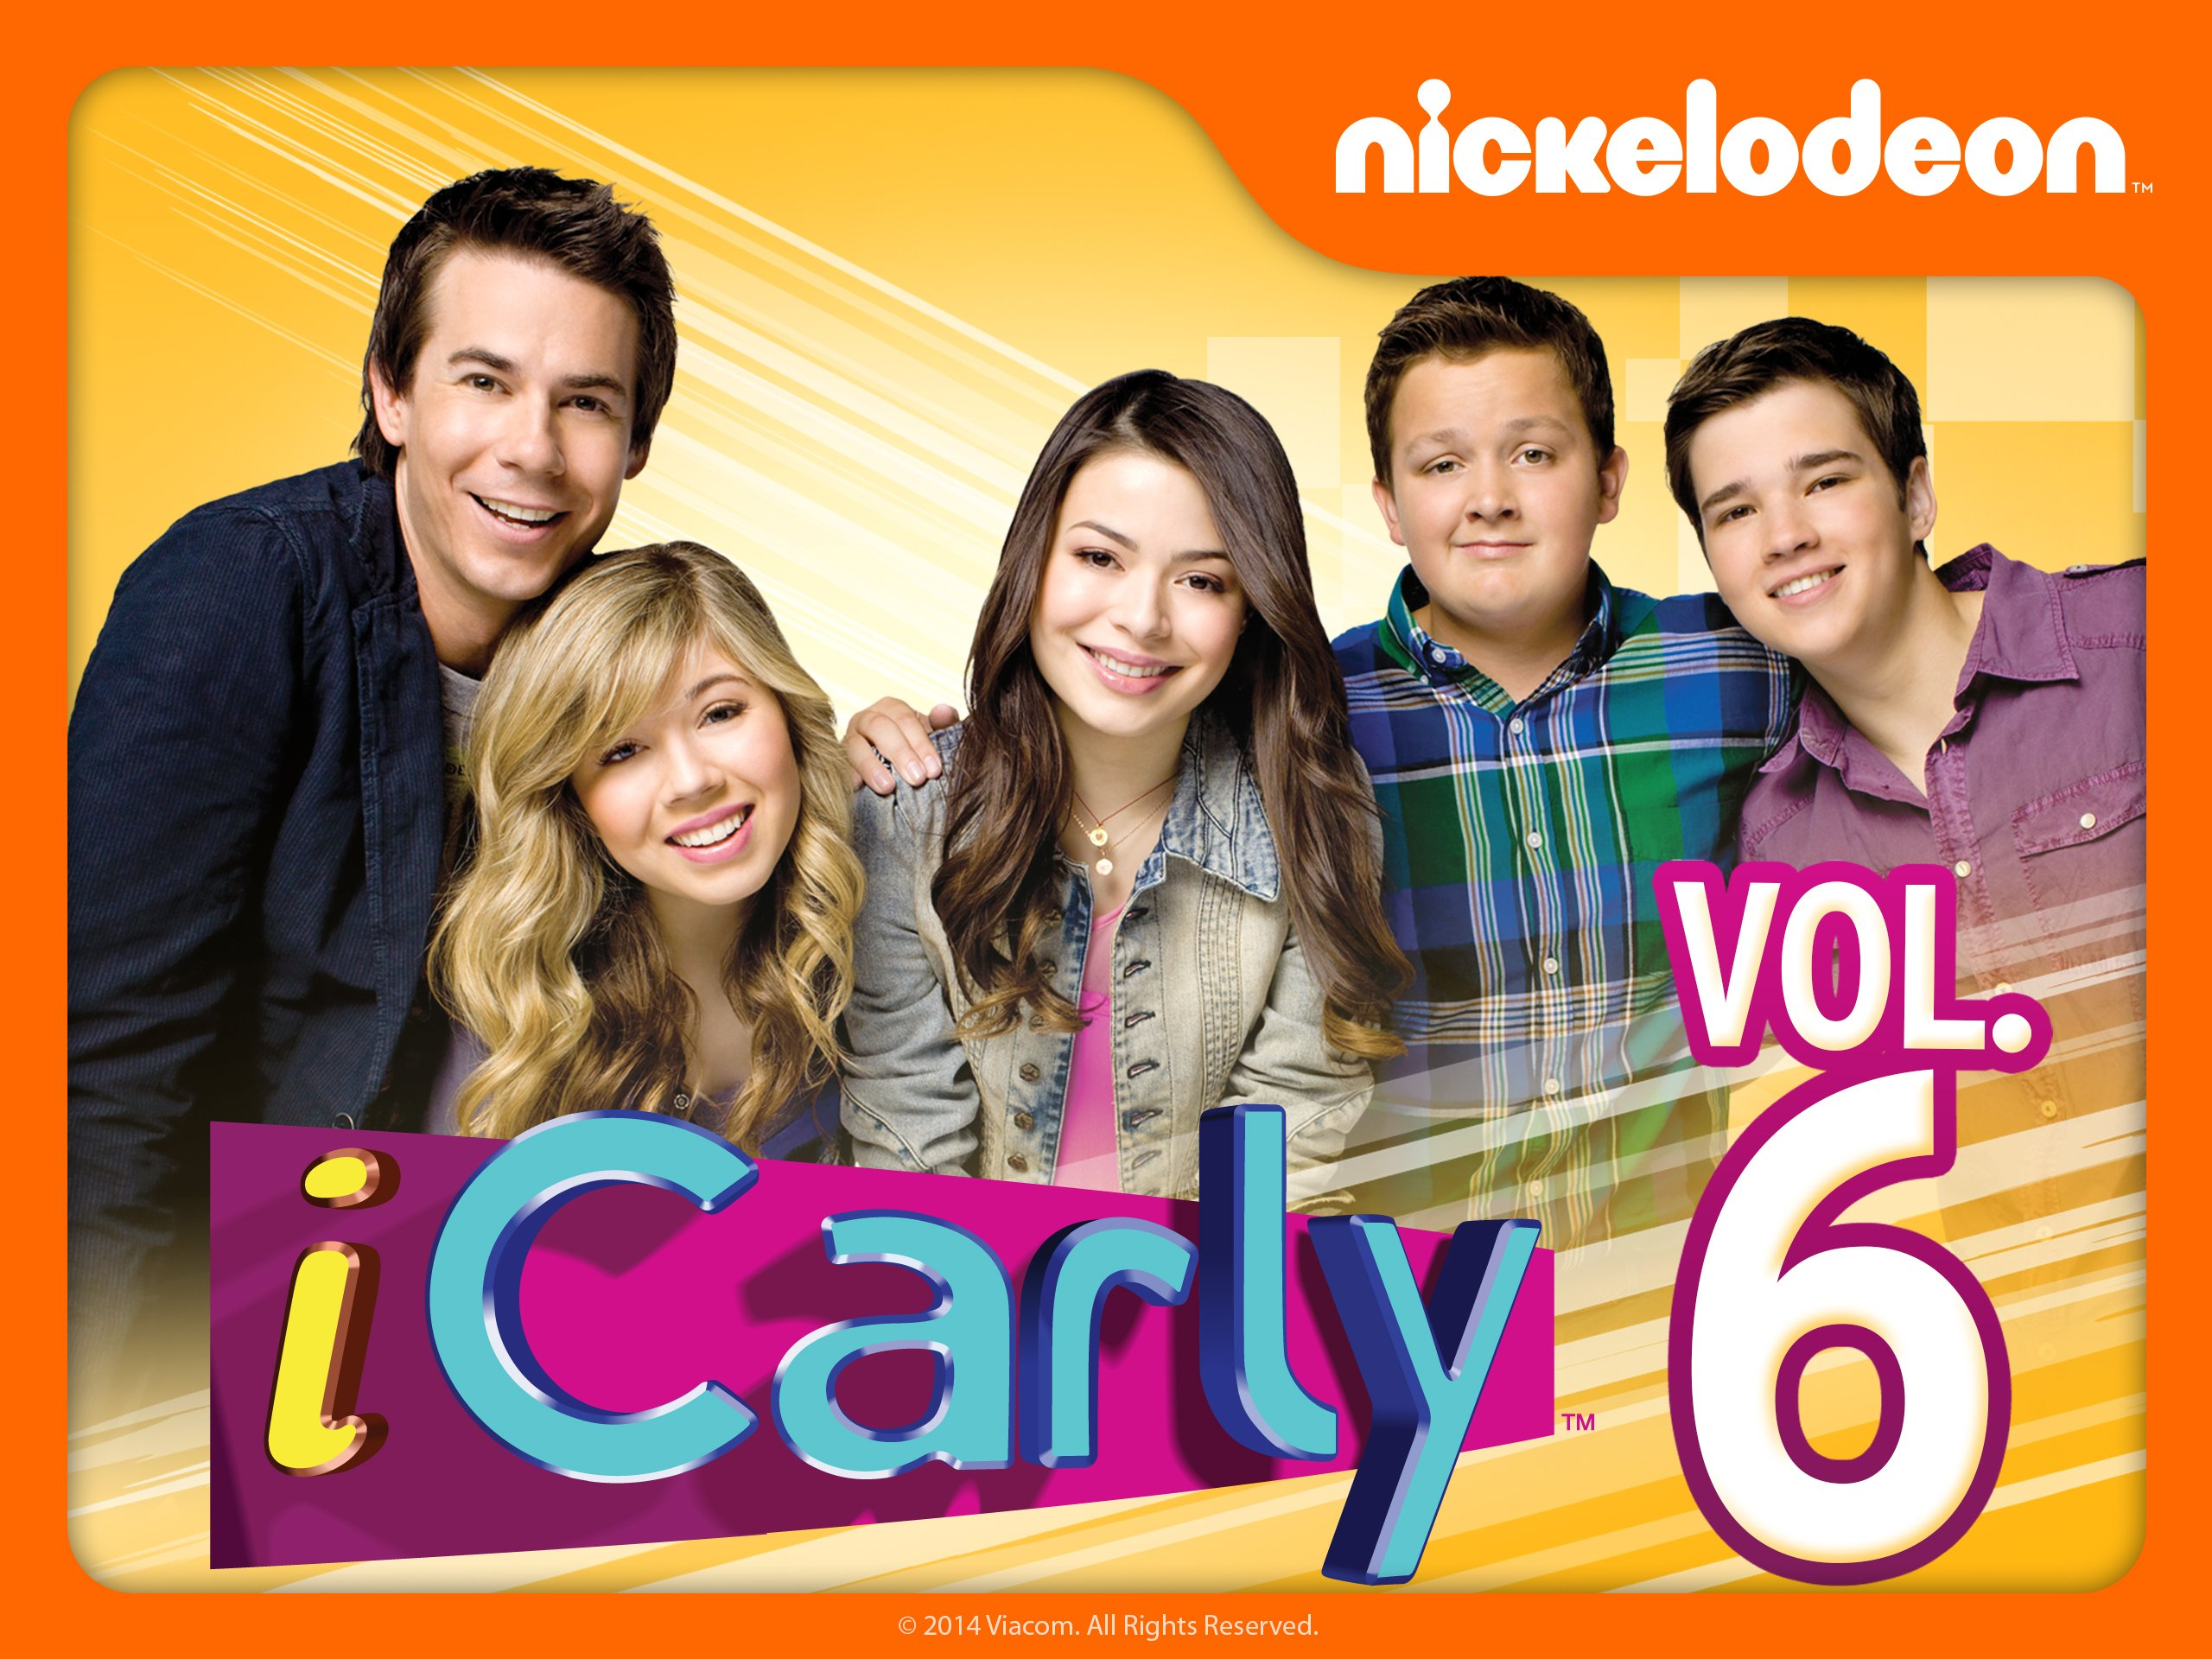 nathan kress wedding icarly. amazon.com: icarly season 6: miranda cosgrove, jenette mccurdy, nathan kress, jerry trainor: amazon digital services llc kress wedding icarly